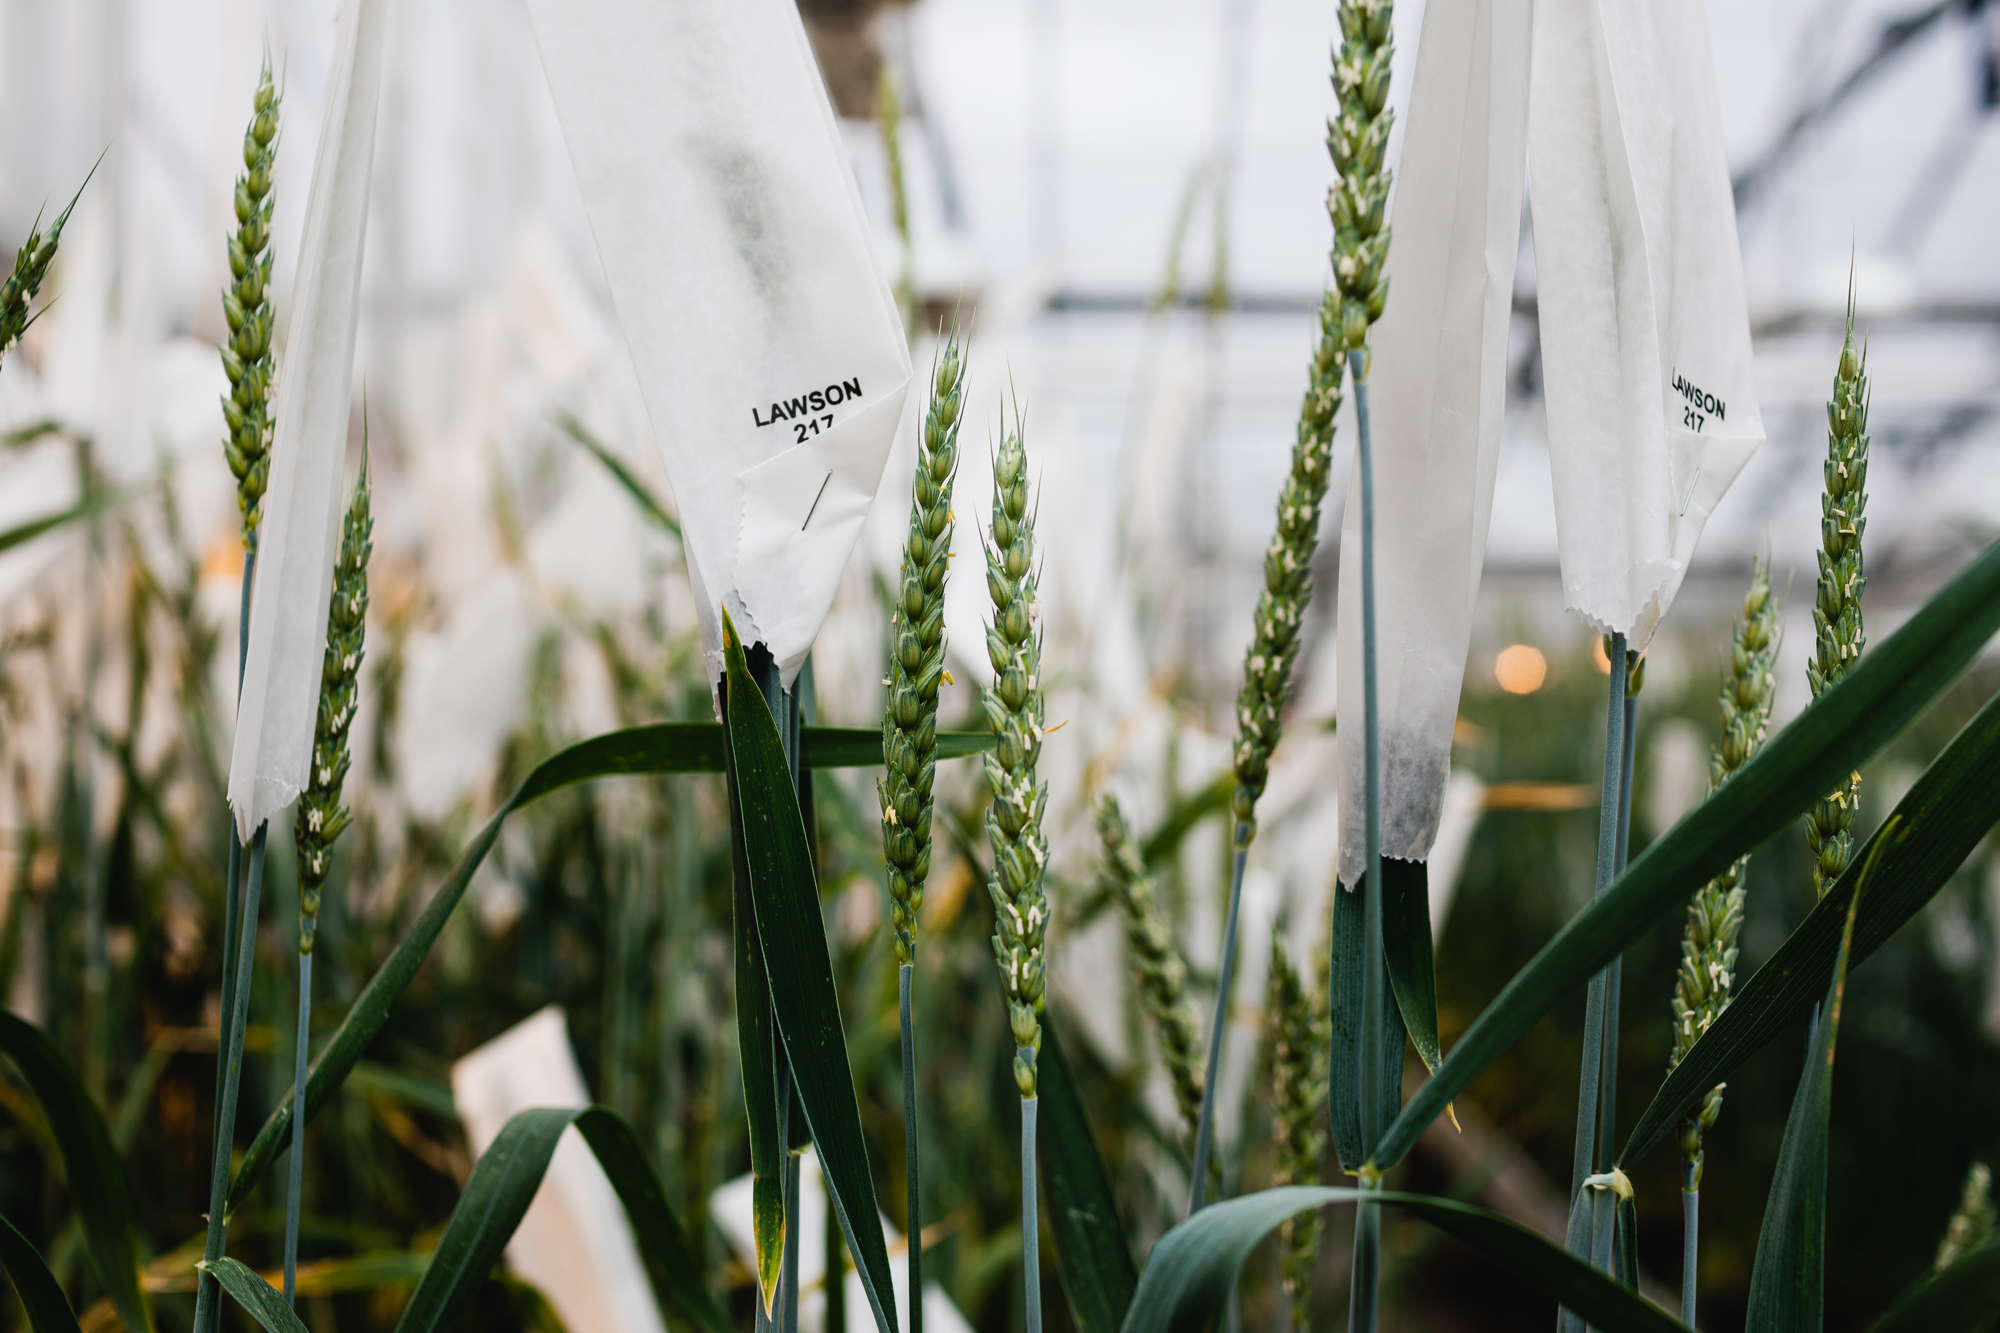 BGRI-led coalition protects world's wheat crop